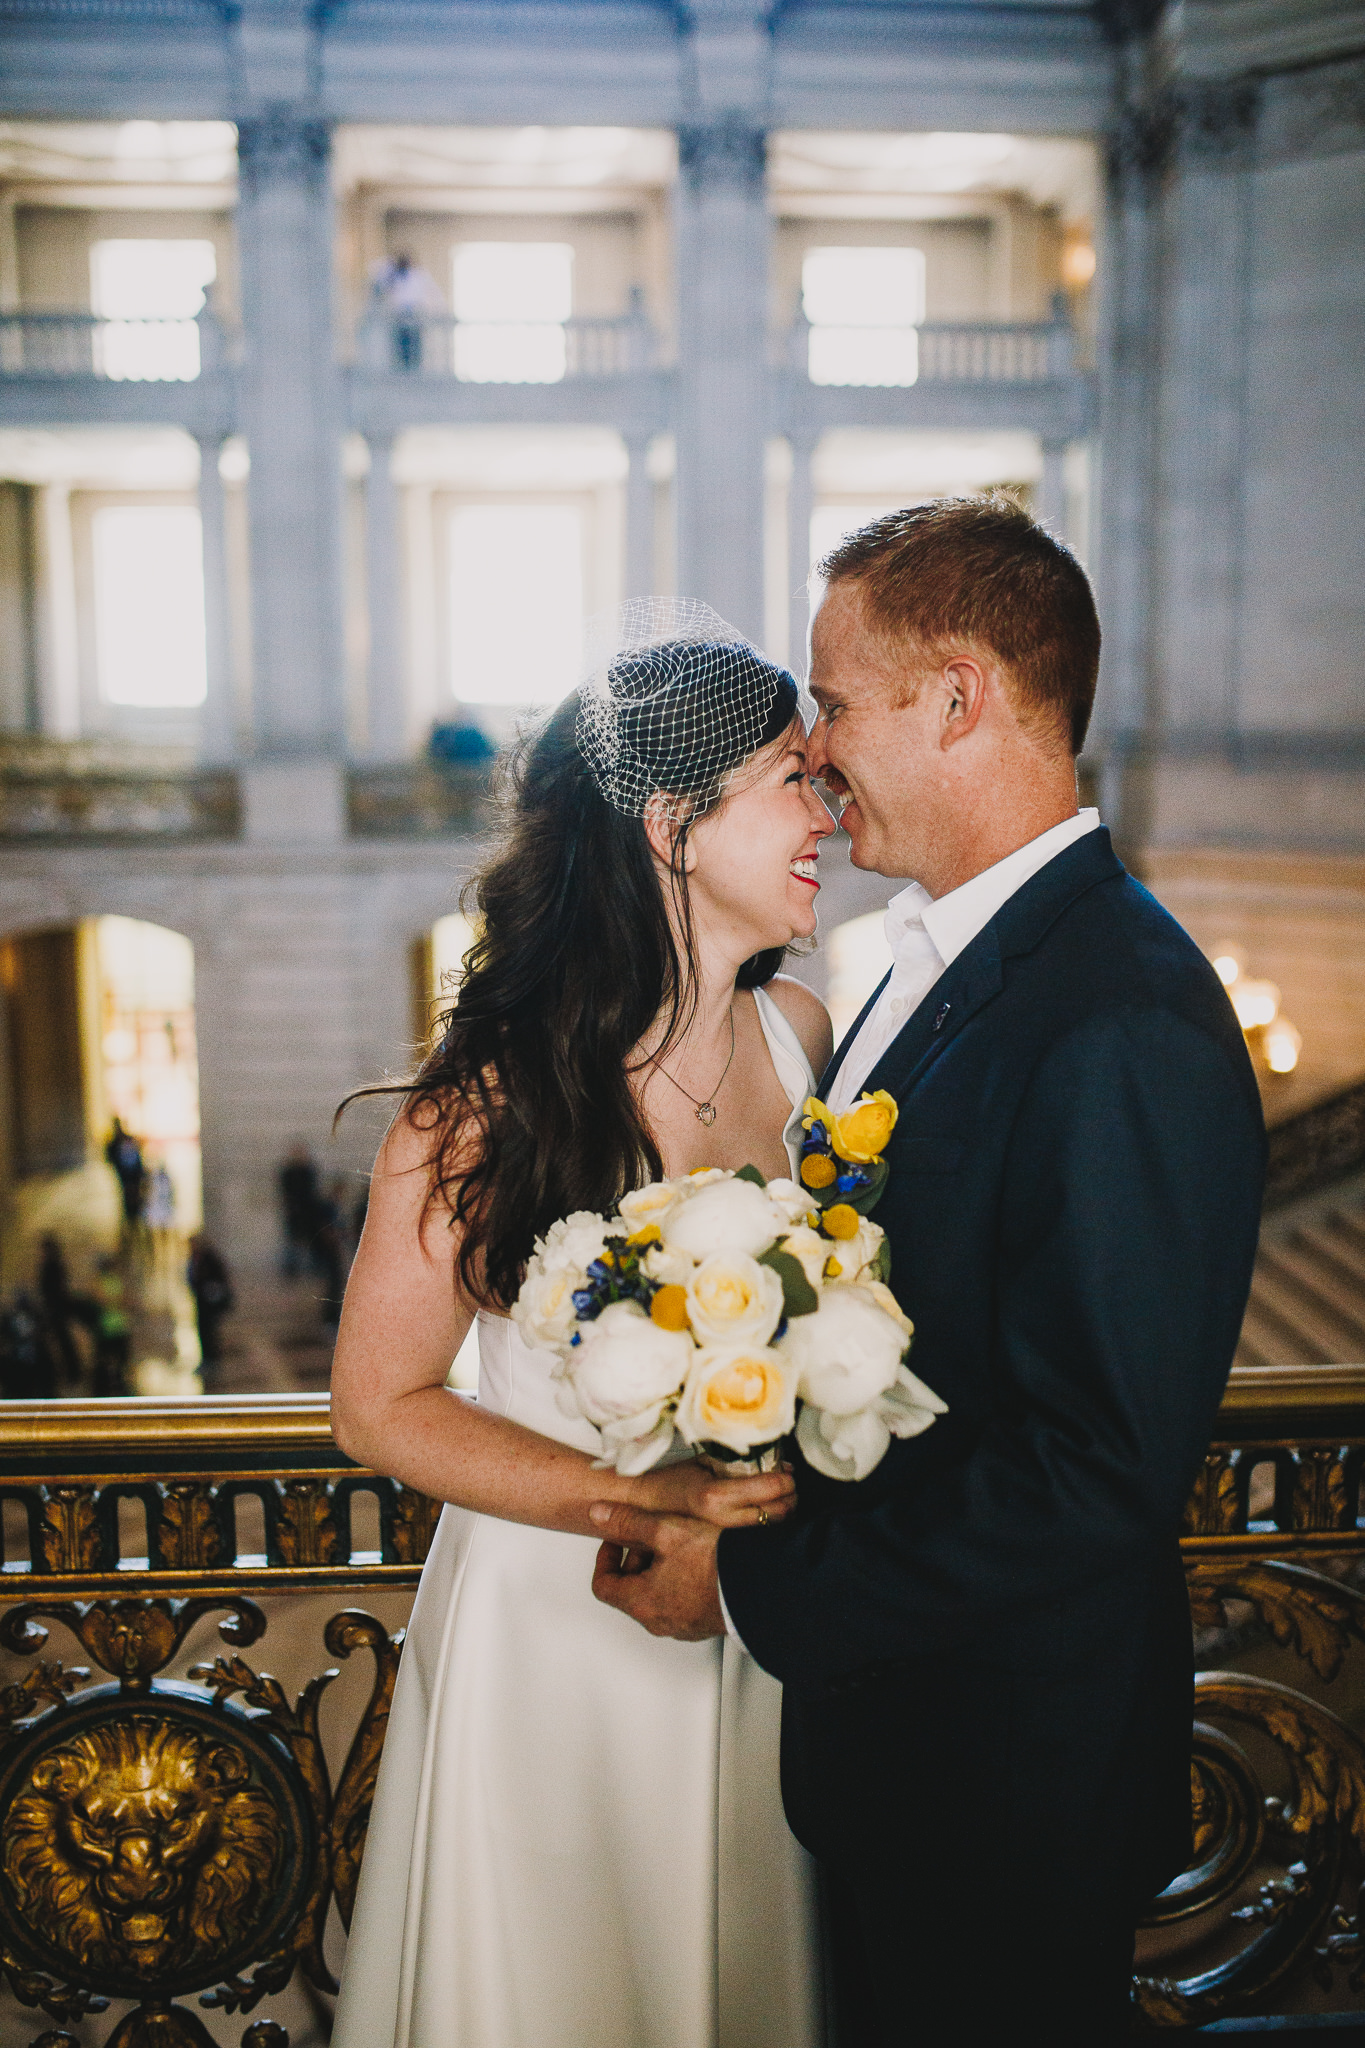 Archer Inspired Photography SF City Hall Elopement Wedding Lifestyle Documentary Affordable Photographer-204.jpg